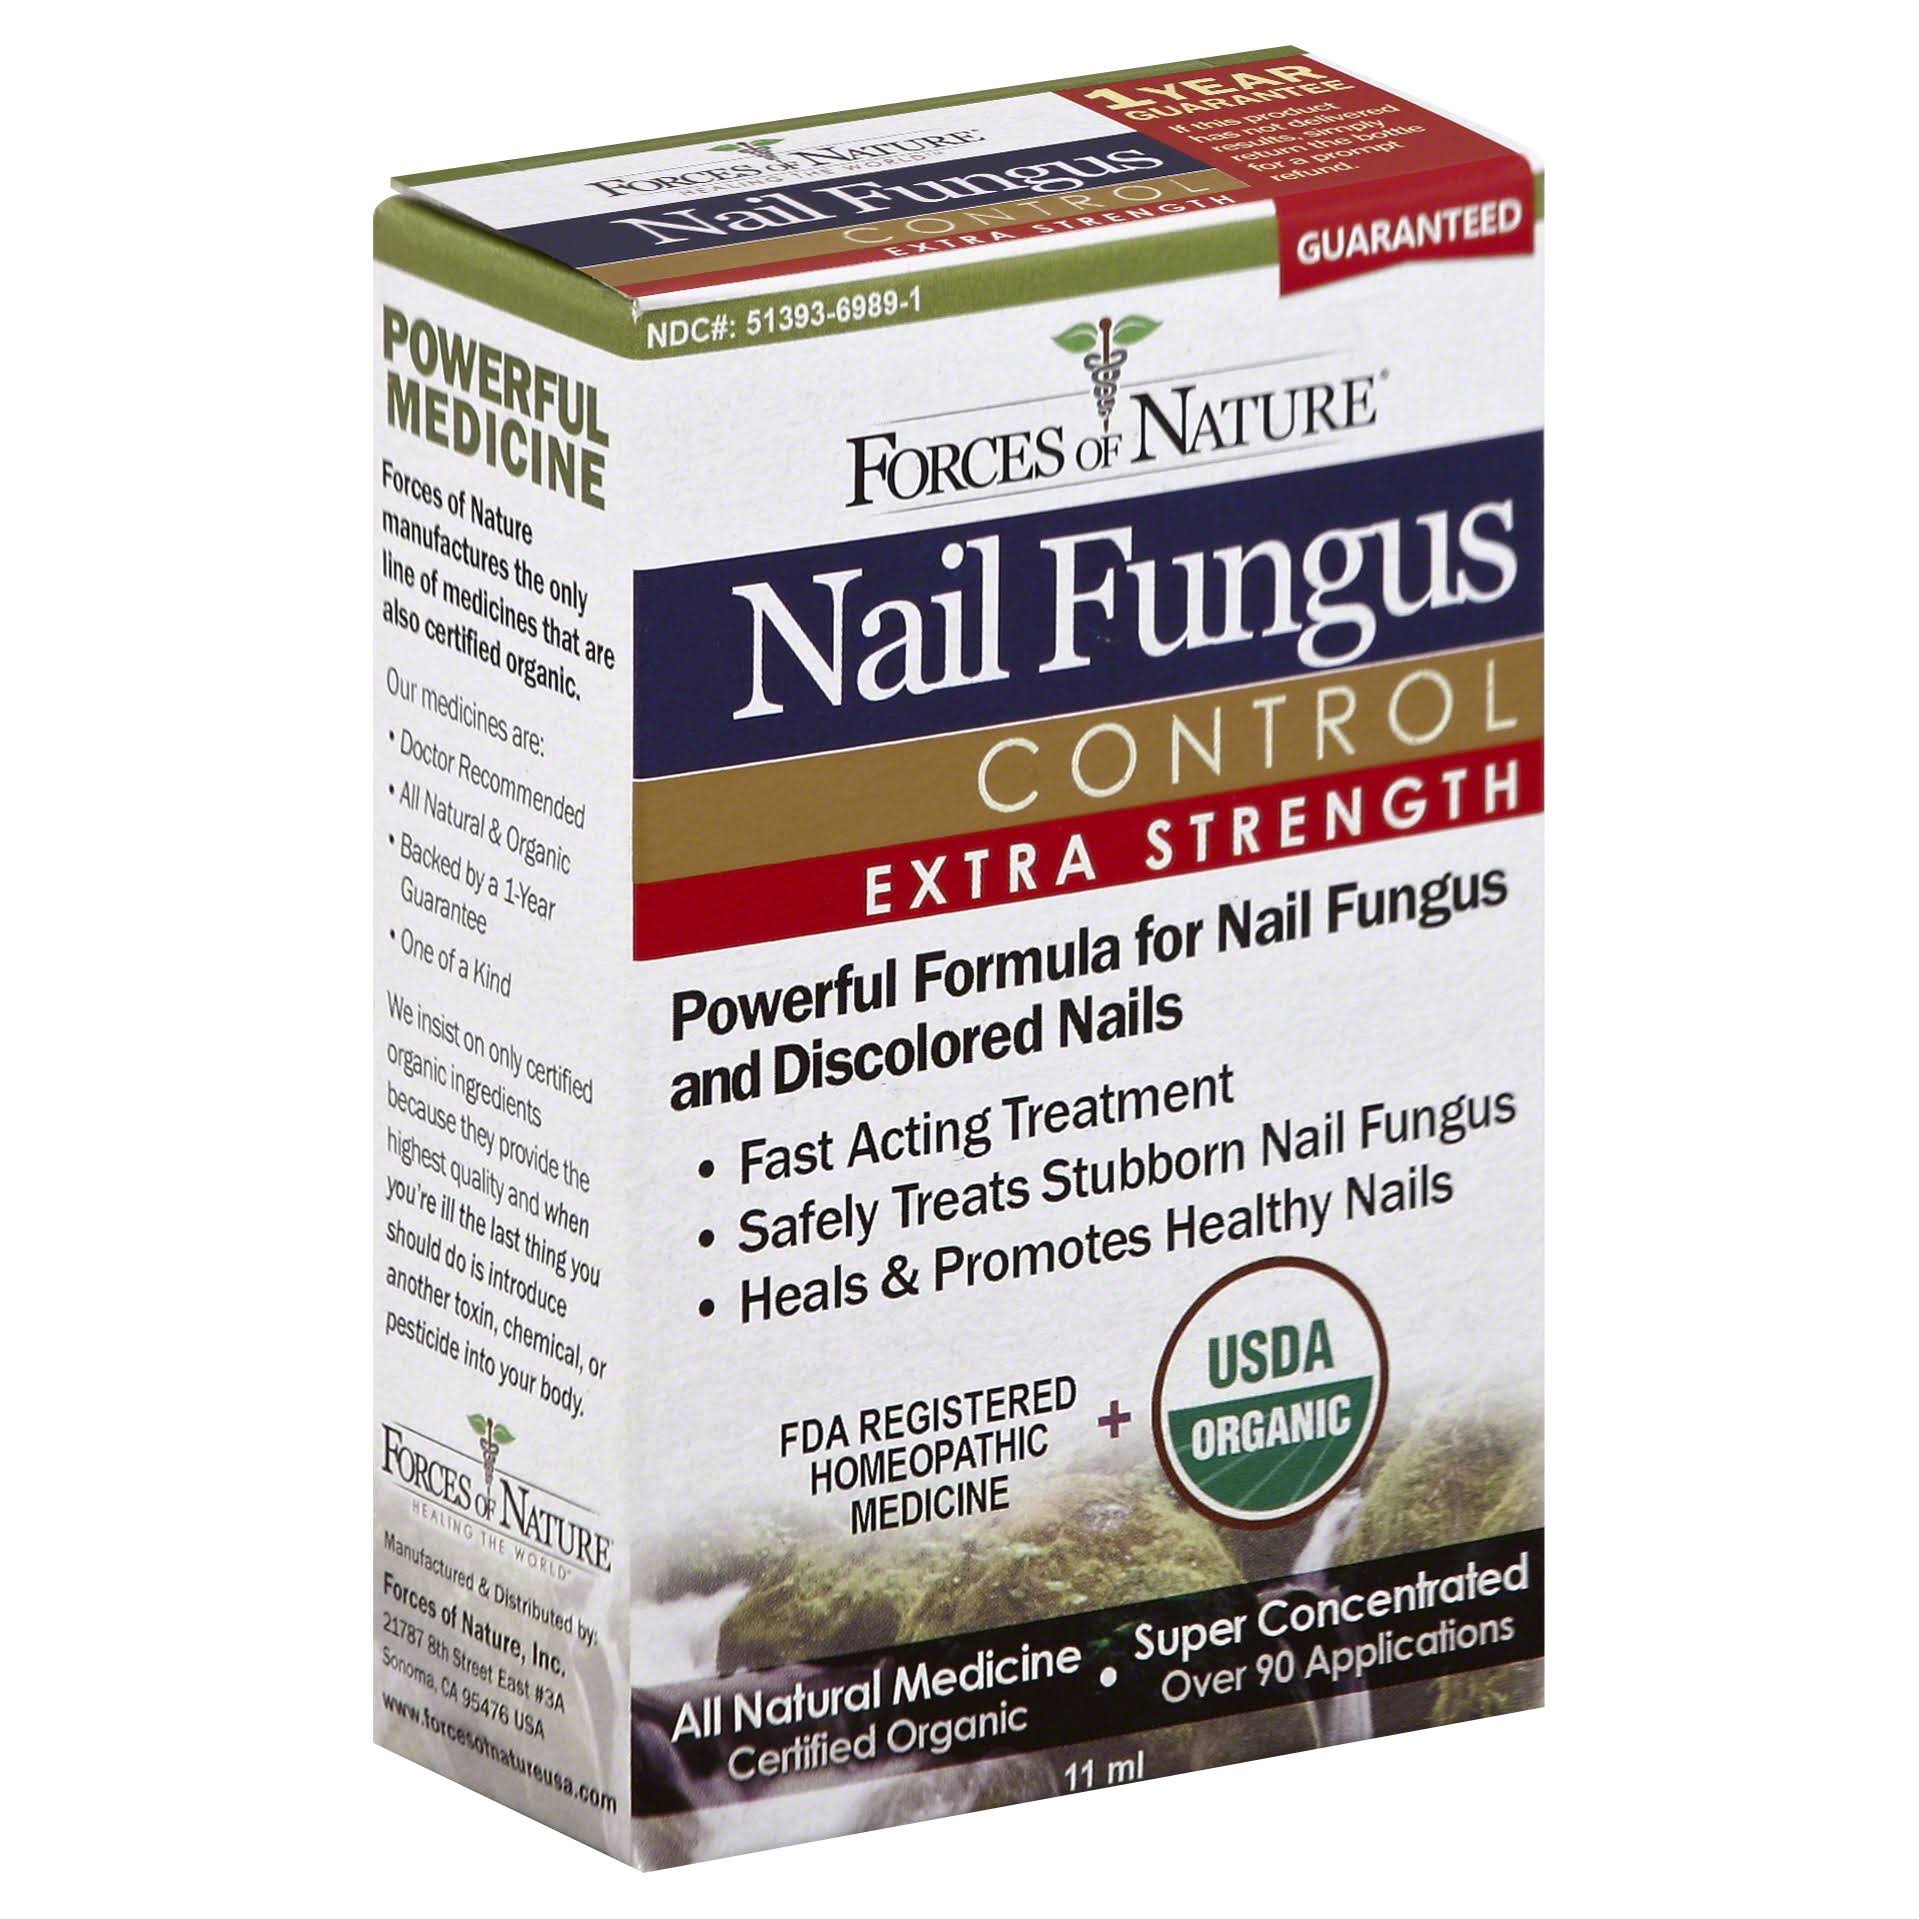 Forces Of Nature Extra Strength Nail Fungus Control - 11ml